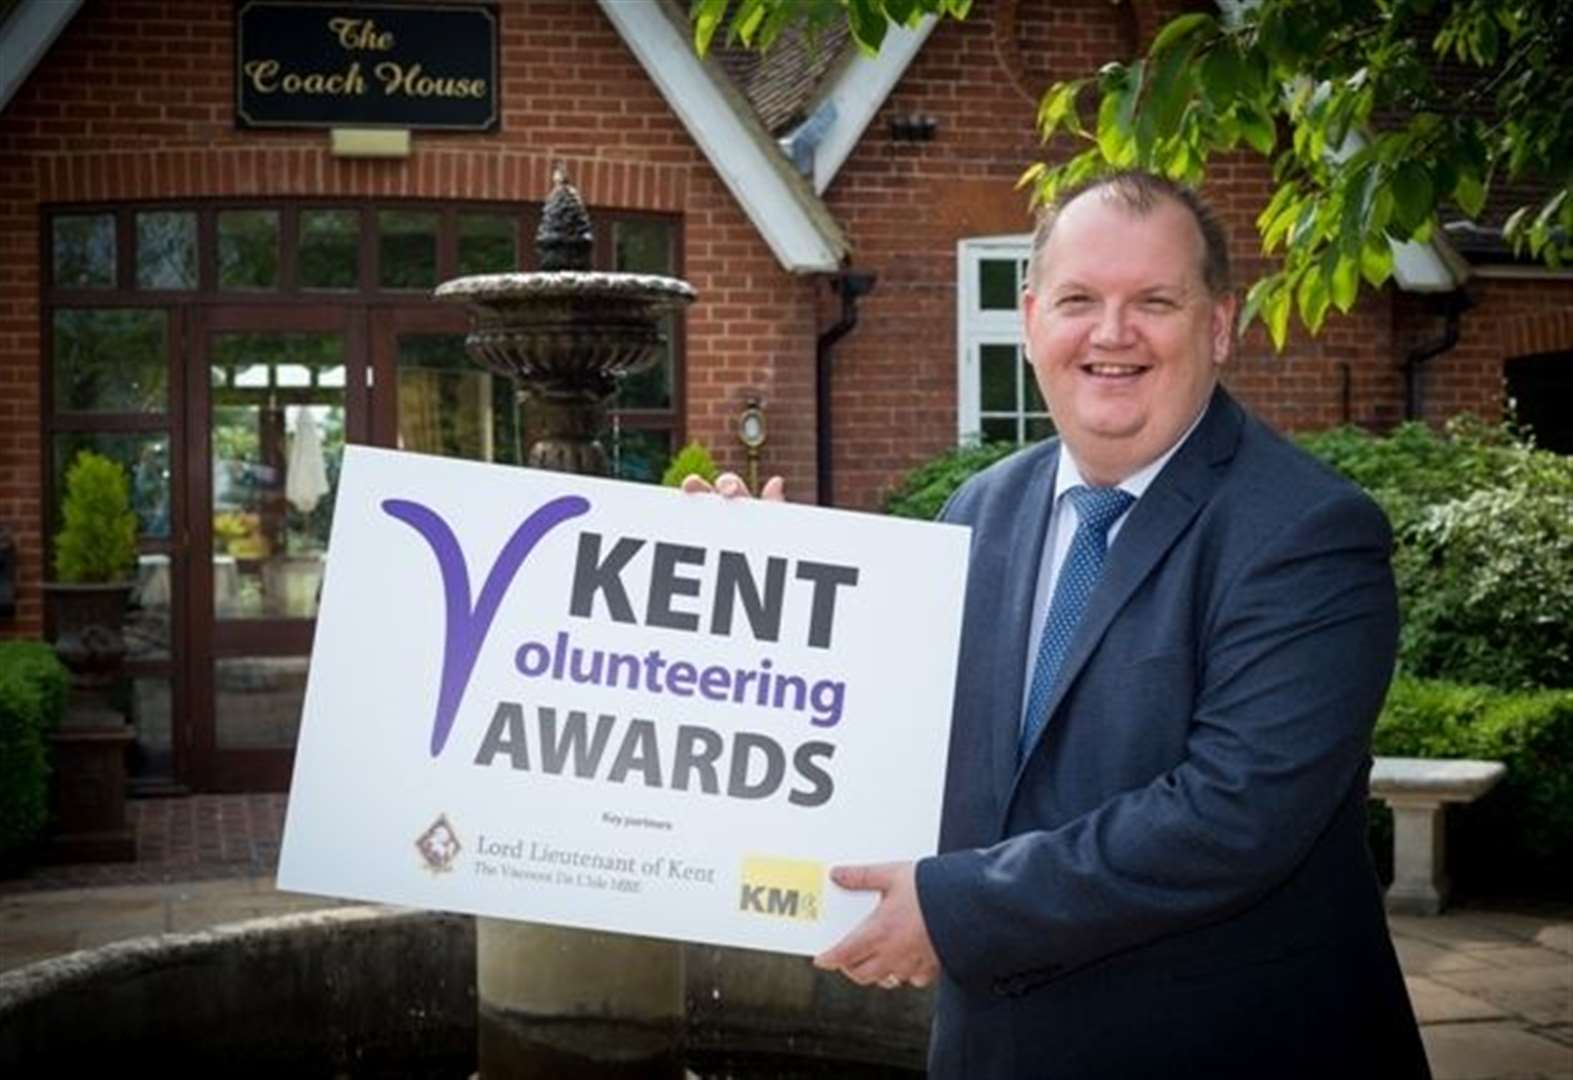 Specials inspire crime tsar's volunteering awards role